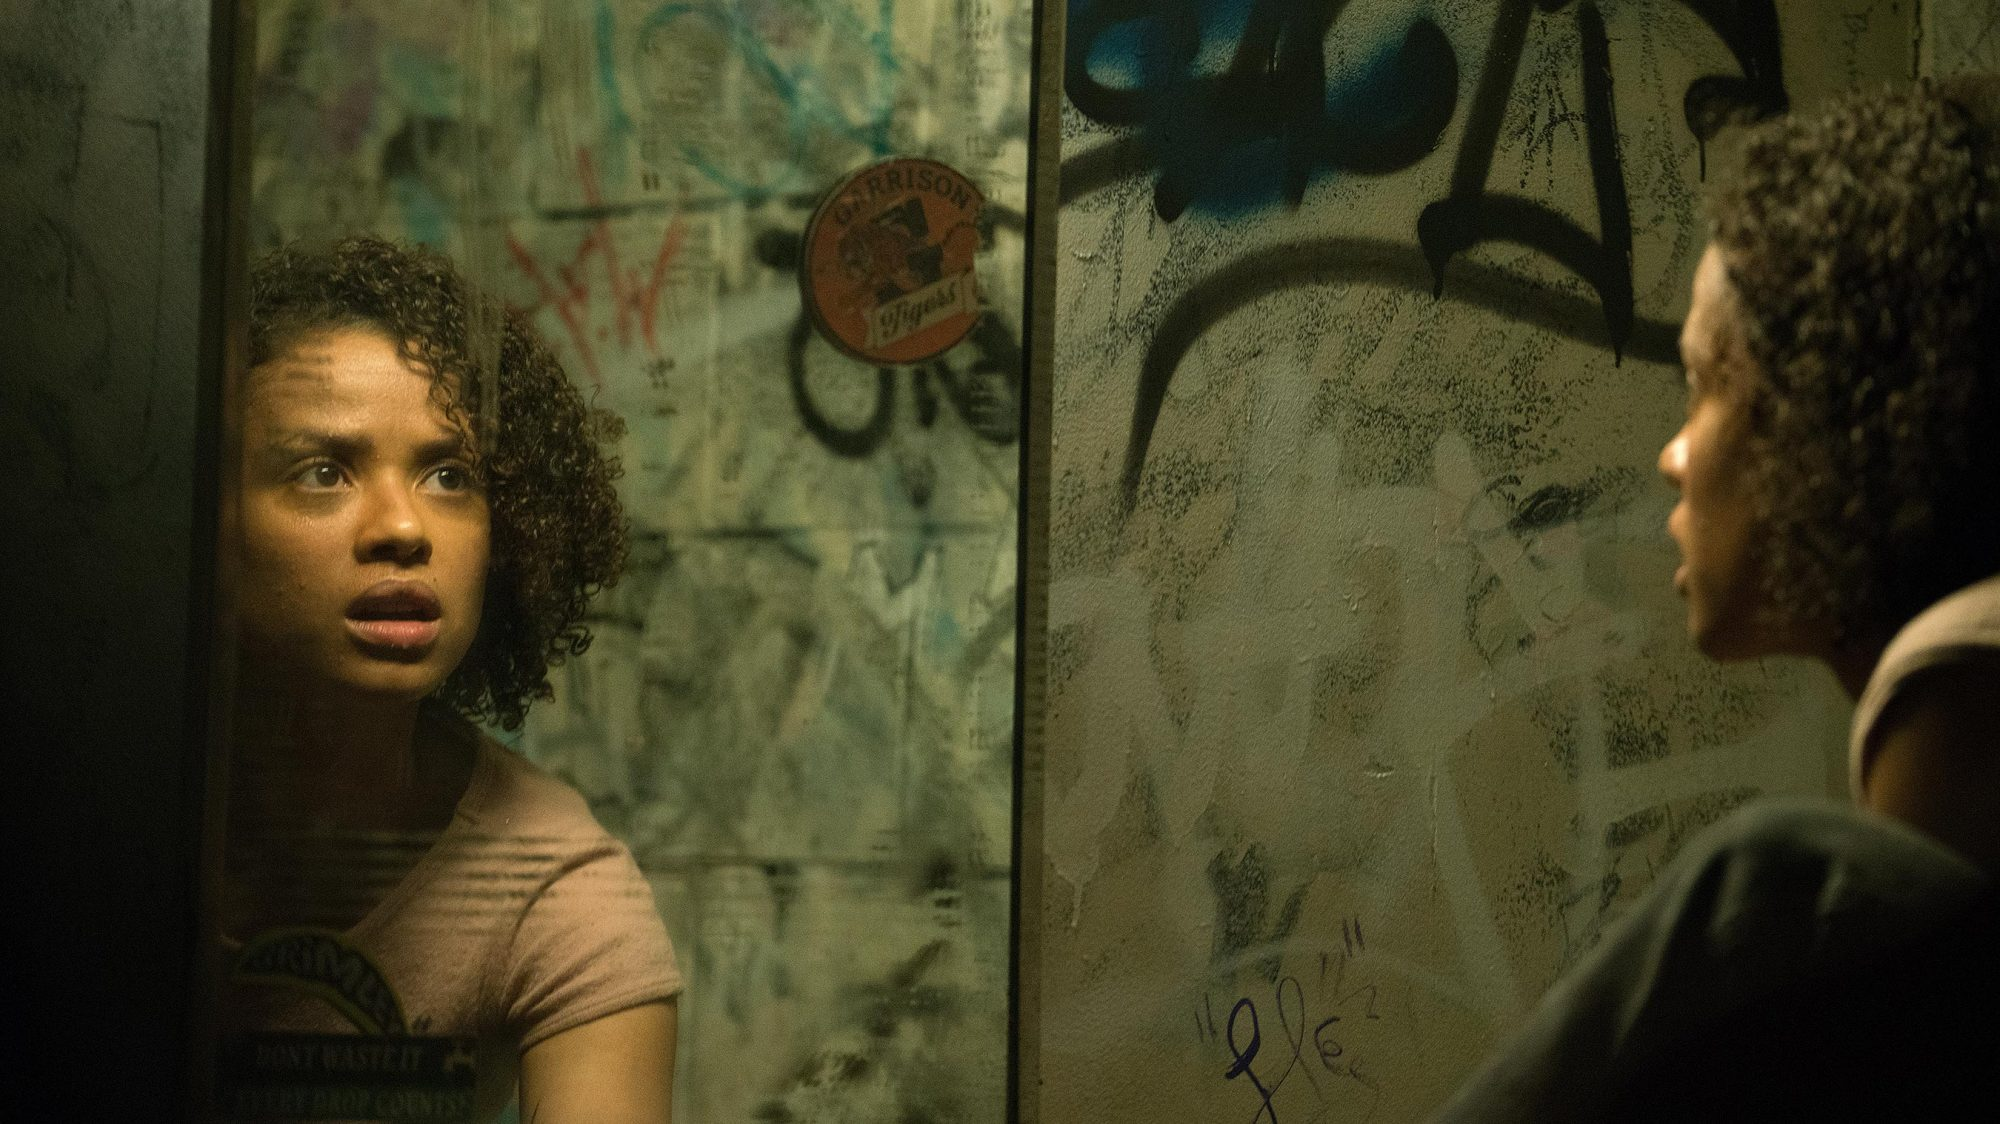 Gugu Mbatha-Raw has superpowers in trailer for Fast ColorCredit: Jacob Yakob